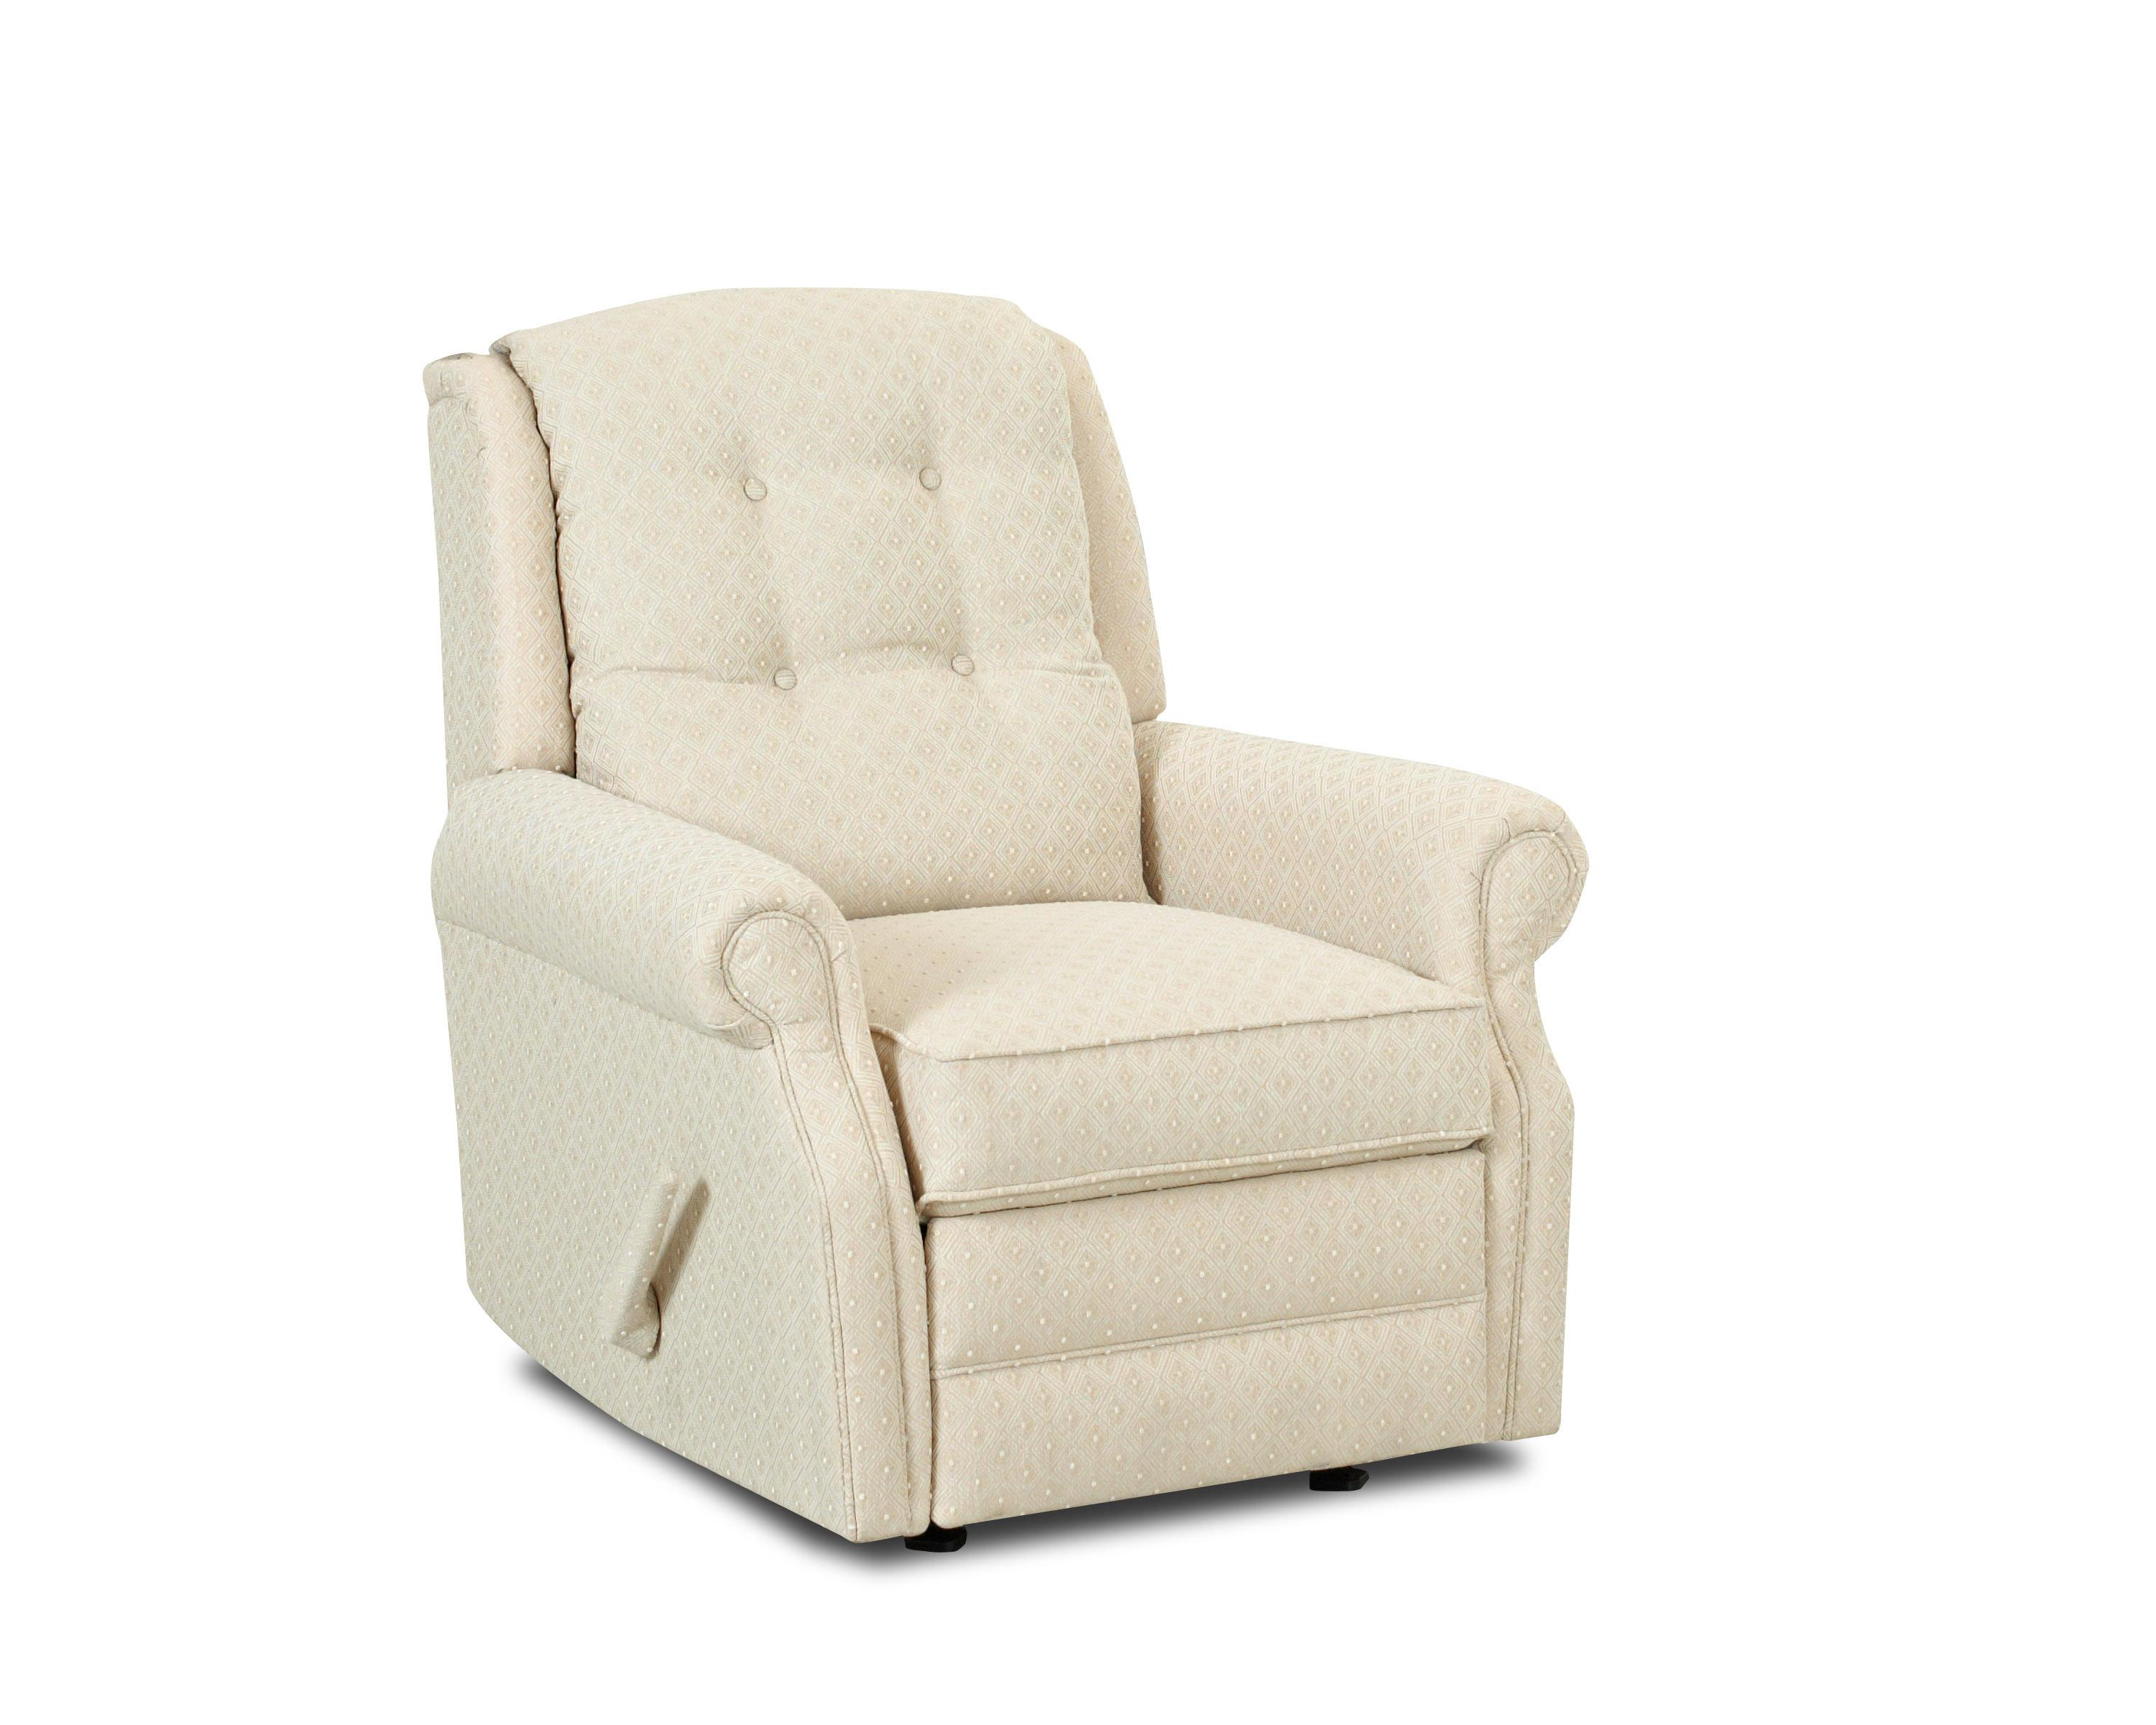 Permalink to Beautiful Rocking Recliner Chair